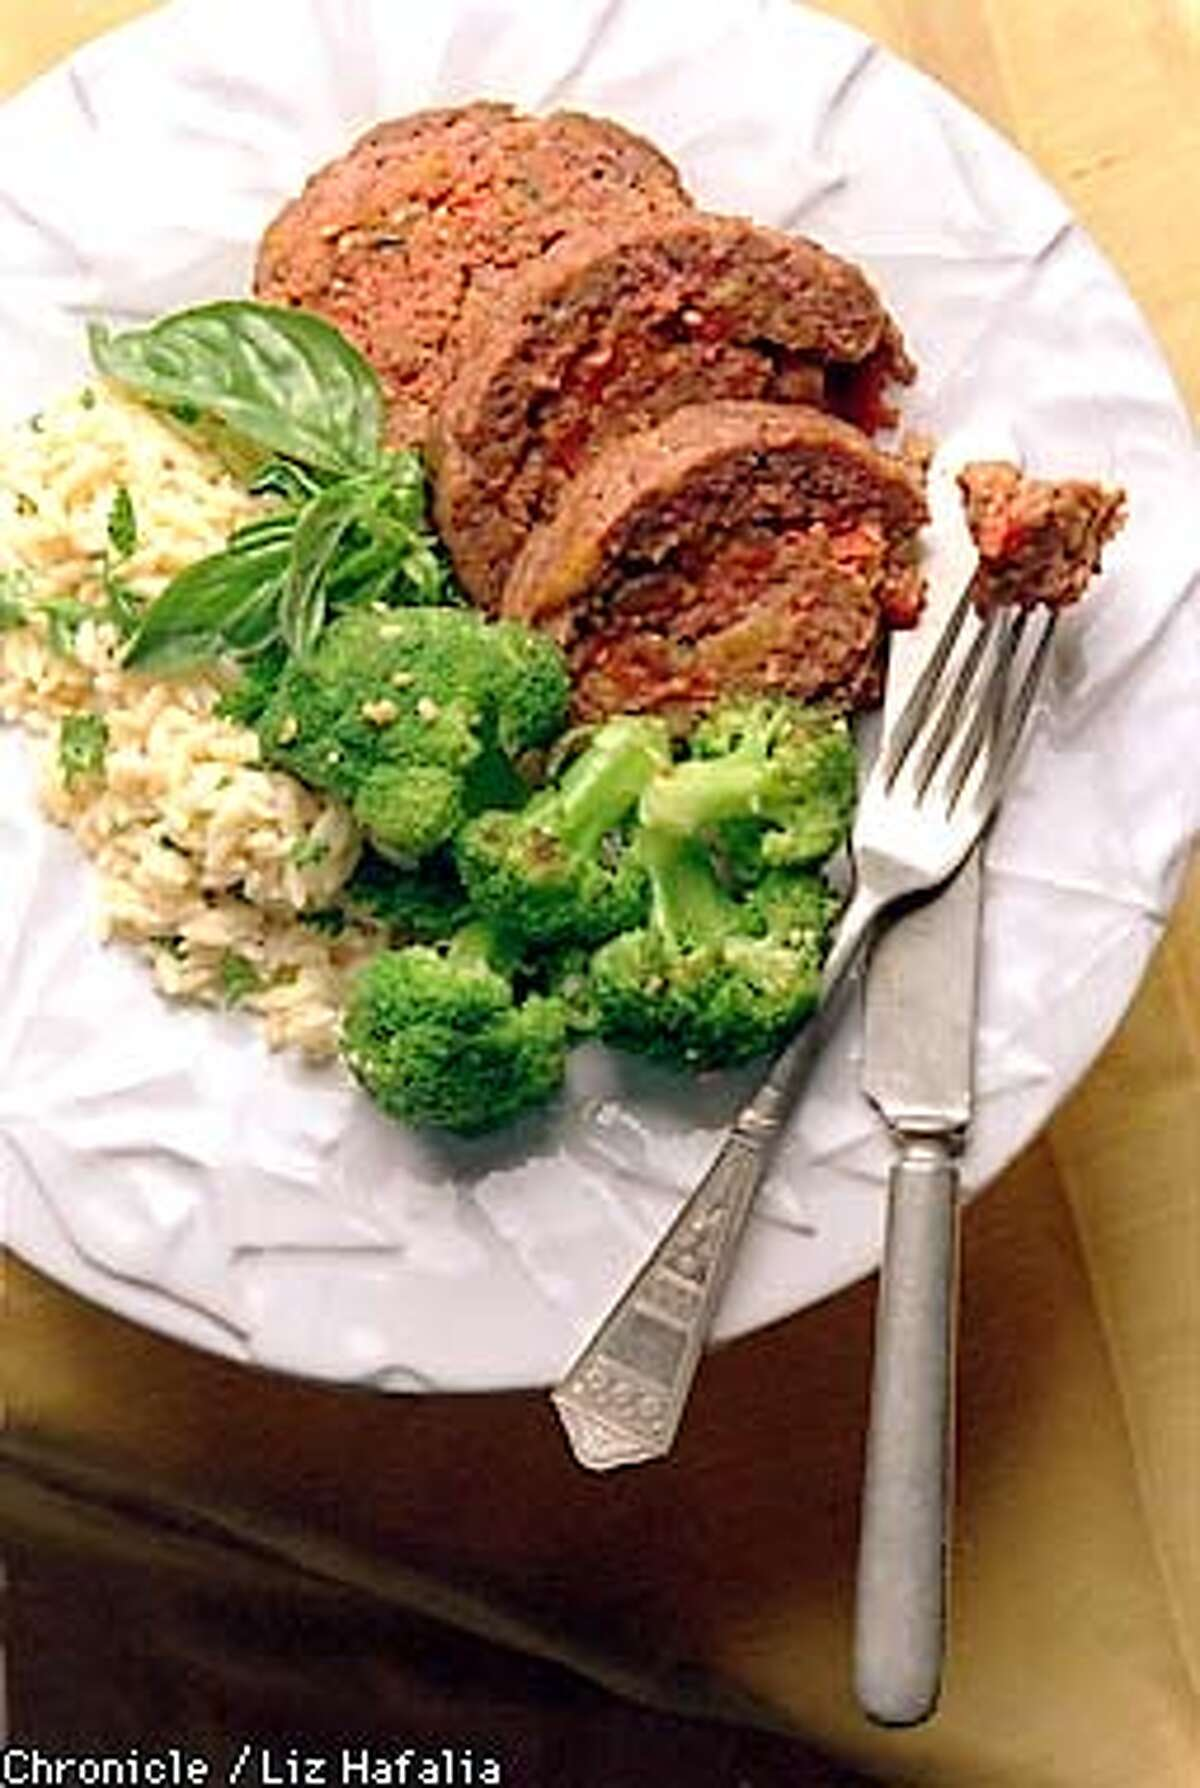 QF-B.MEAMEAT/C/18JUN96/FD/LH--Meatloaf WITH BROCCOLI AND RICE by Dan Bowe. Liz Hafalia